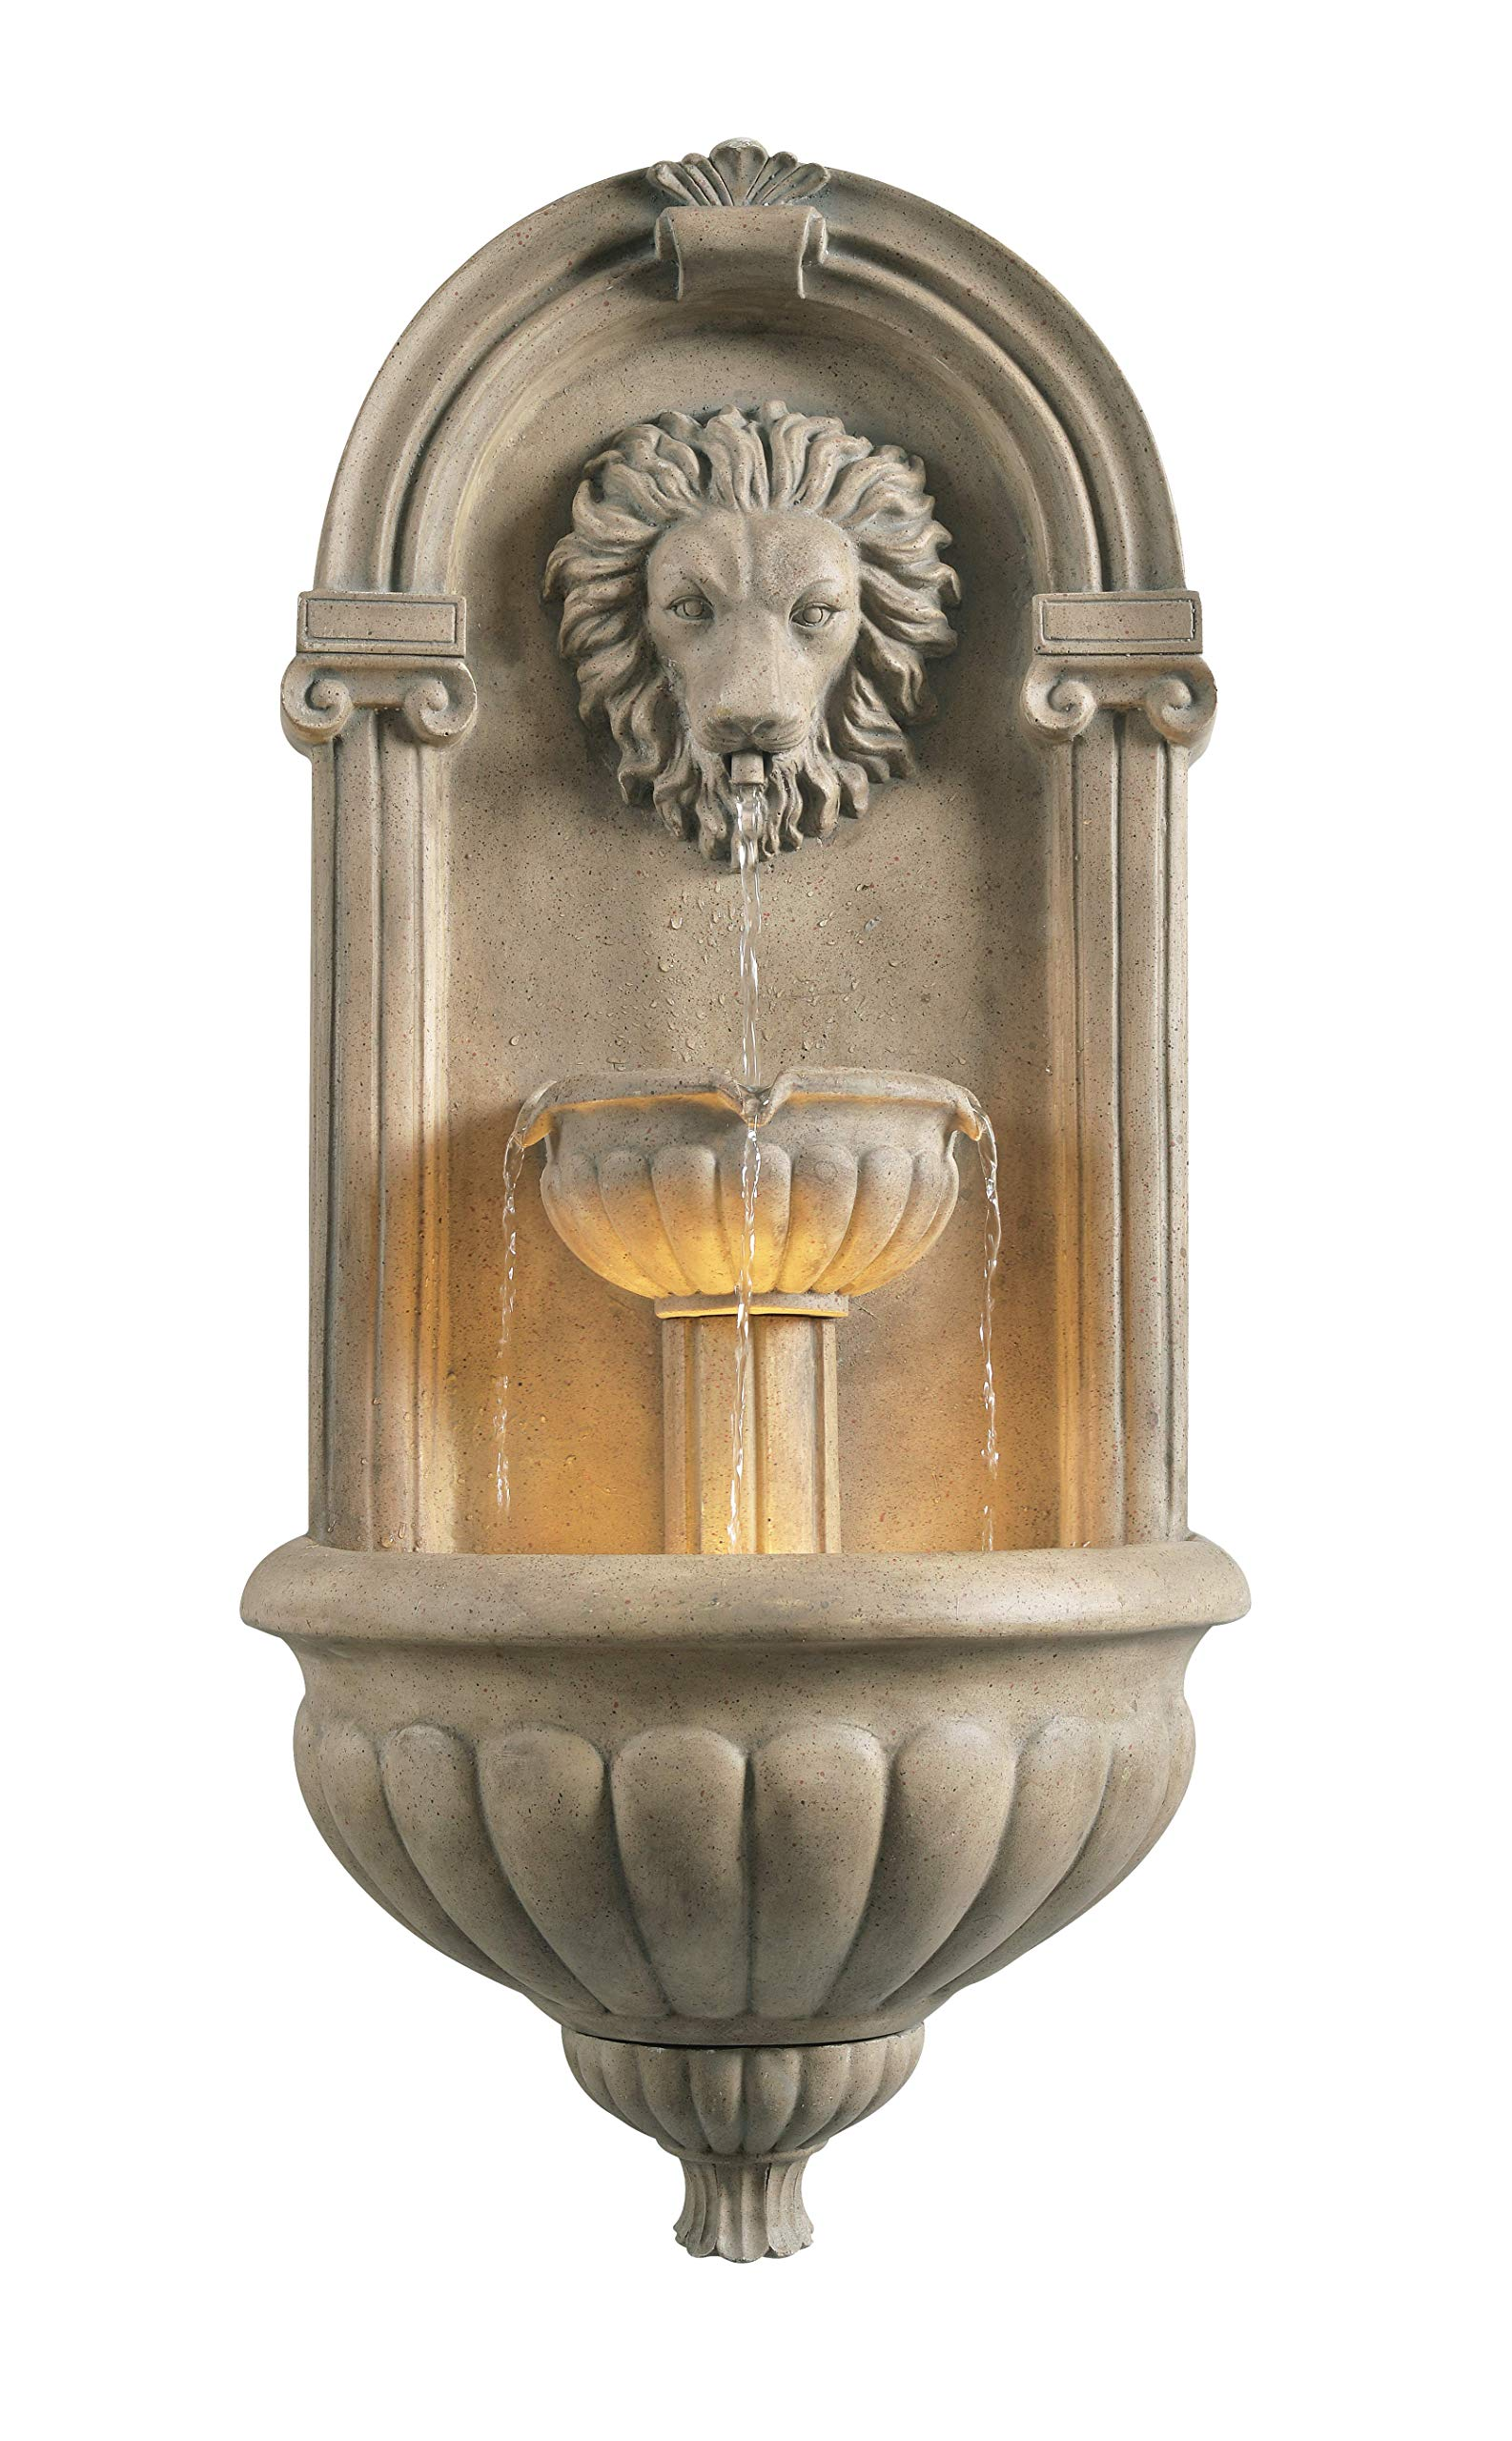 Kenroy Home 51043SNDST Royal Wall Fountain with Light, Sandstone Finish